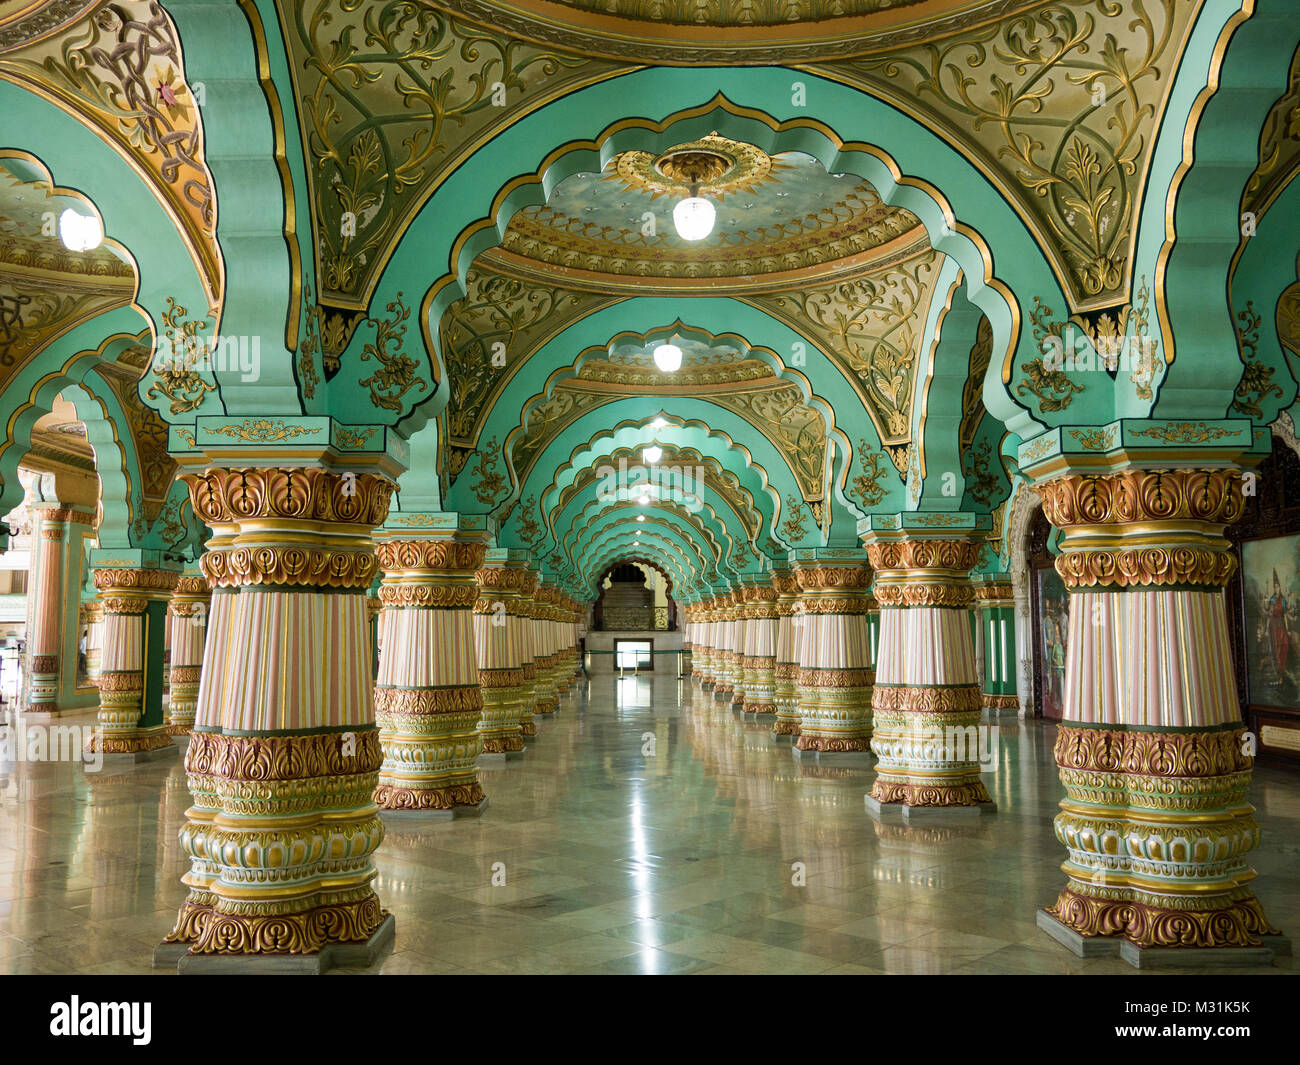 Interior Pillars Mysore Palace Interior Stock Photos Amp Mysore Palace